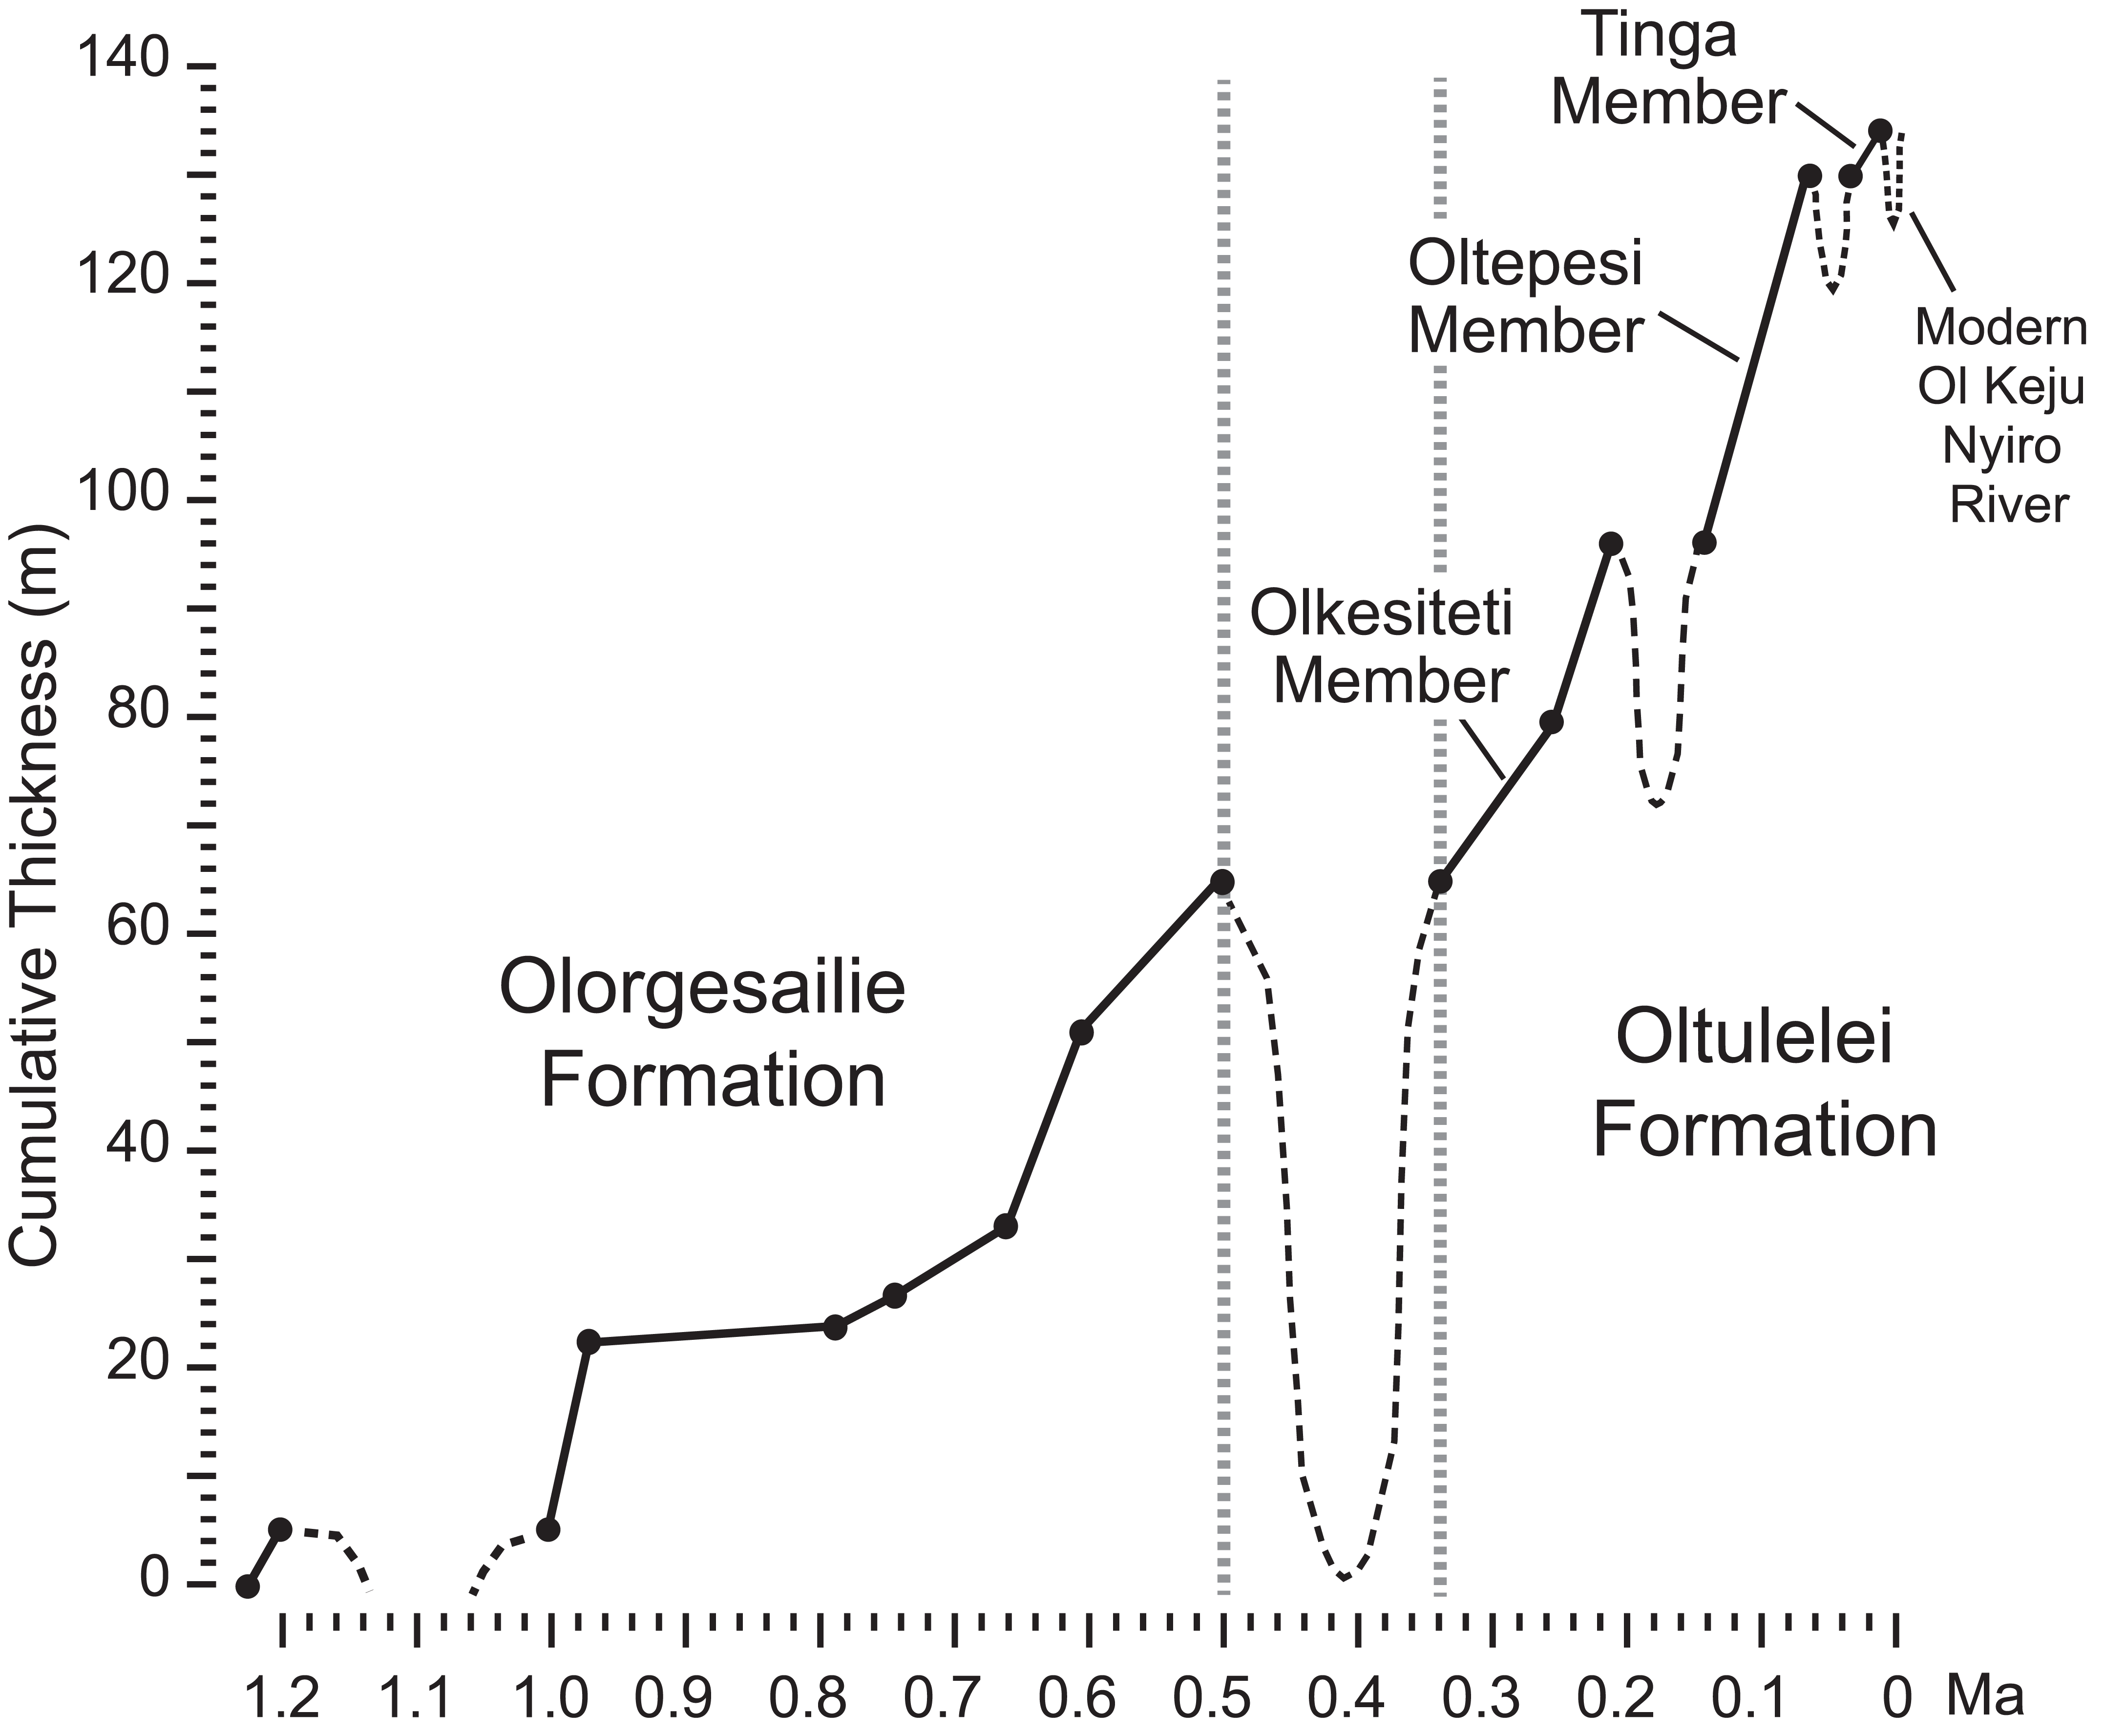 Oltulelei Formation Of The Southern Kenyan Rift Valley A Chronicle